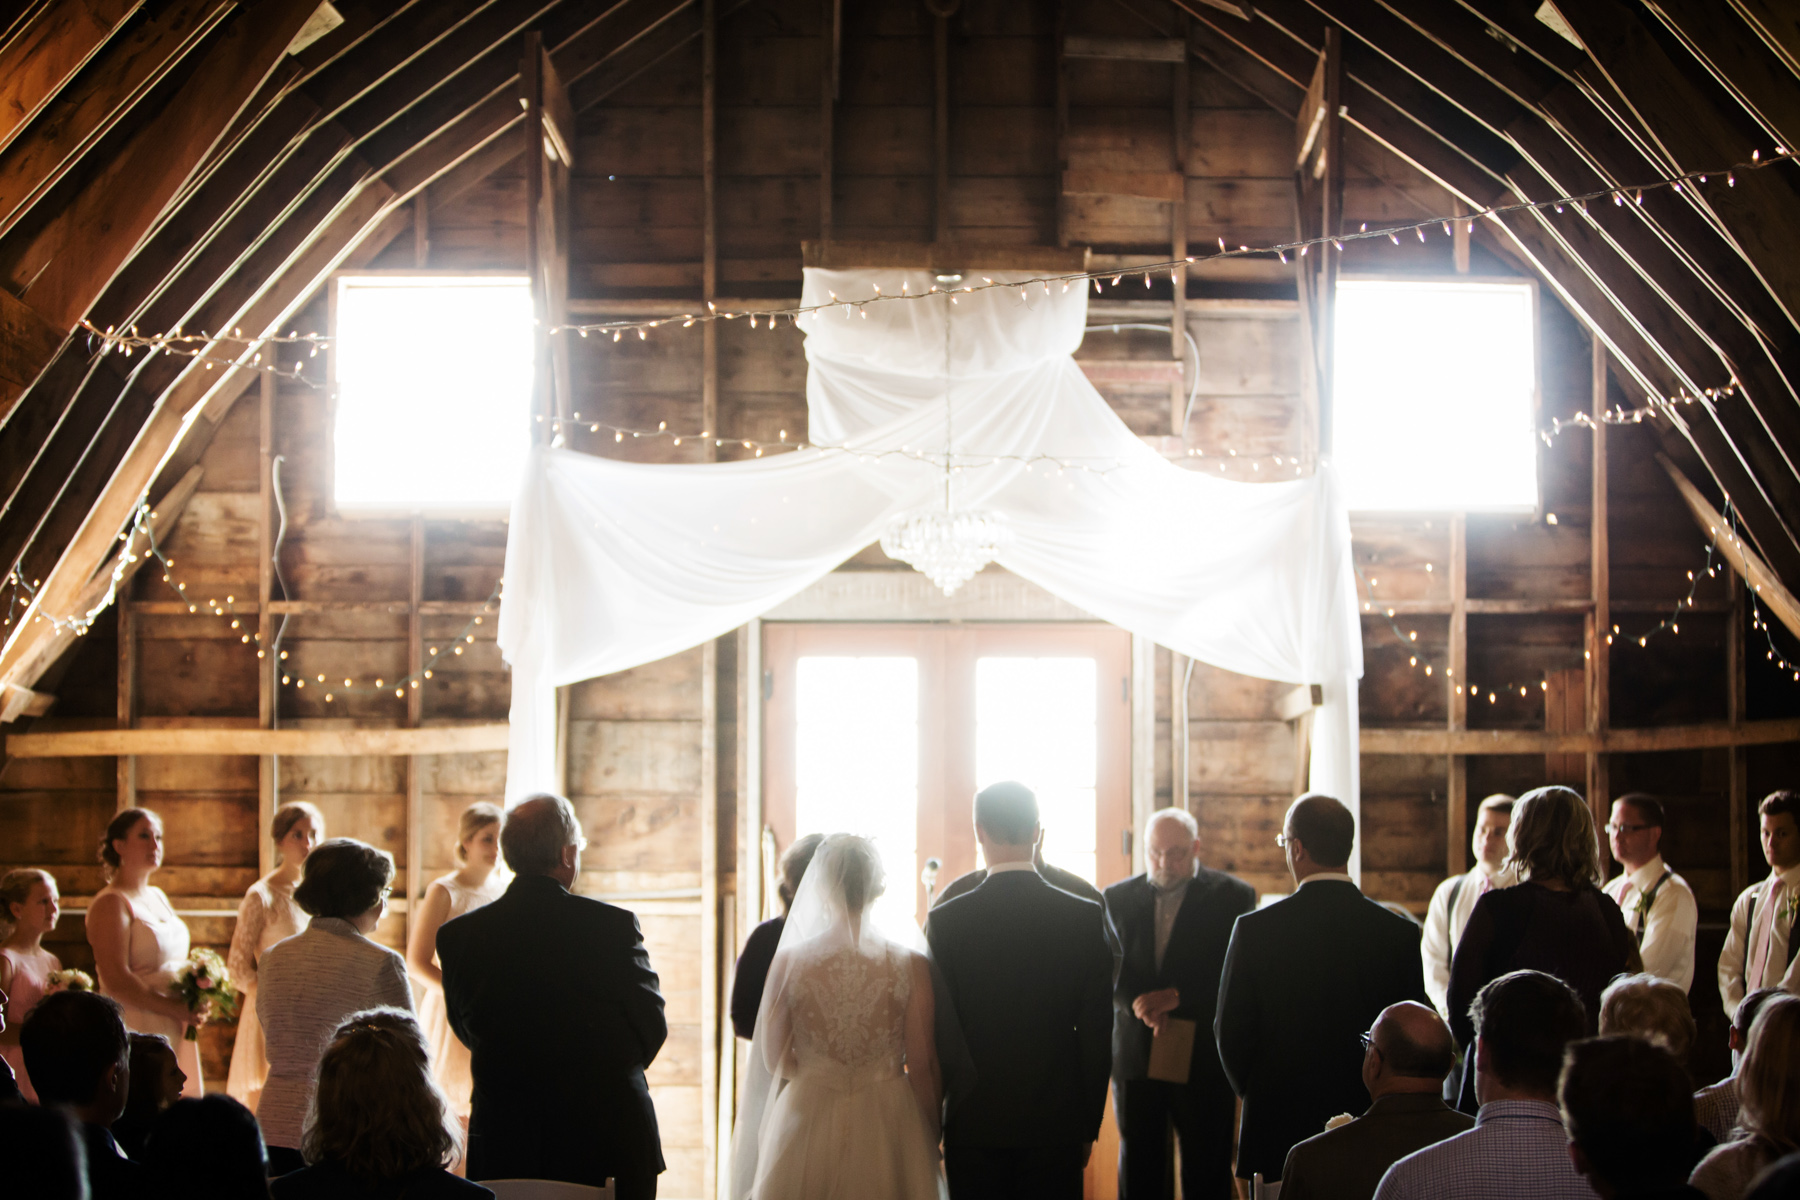 wedding-photographer-rochester-coops-event-barn-clewell-photography-22.jpg